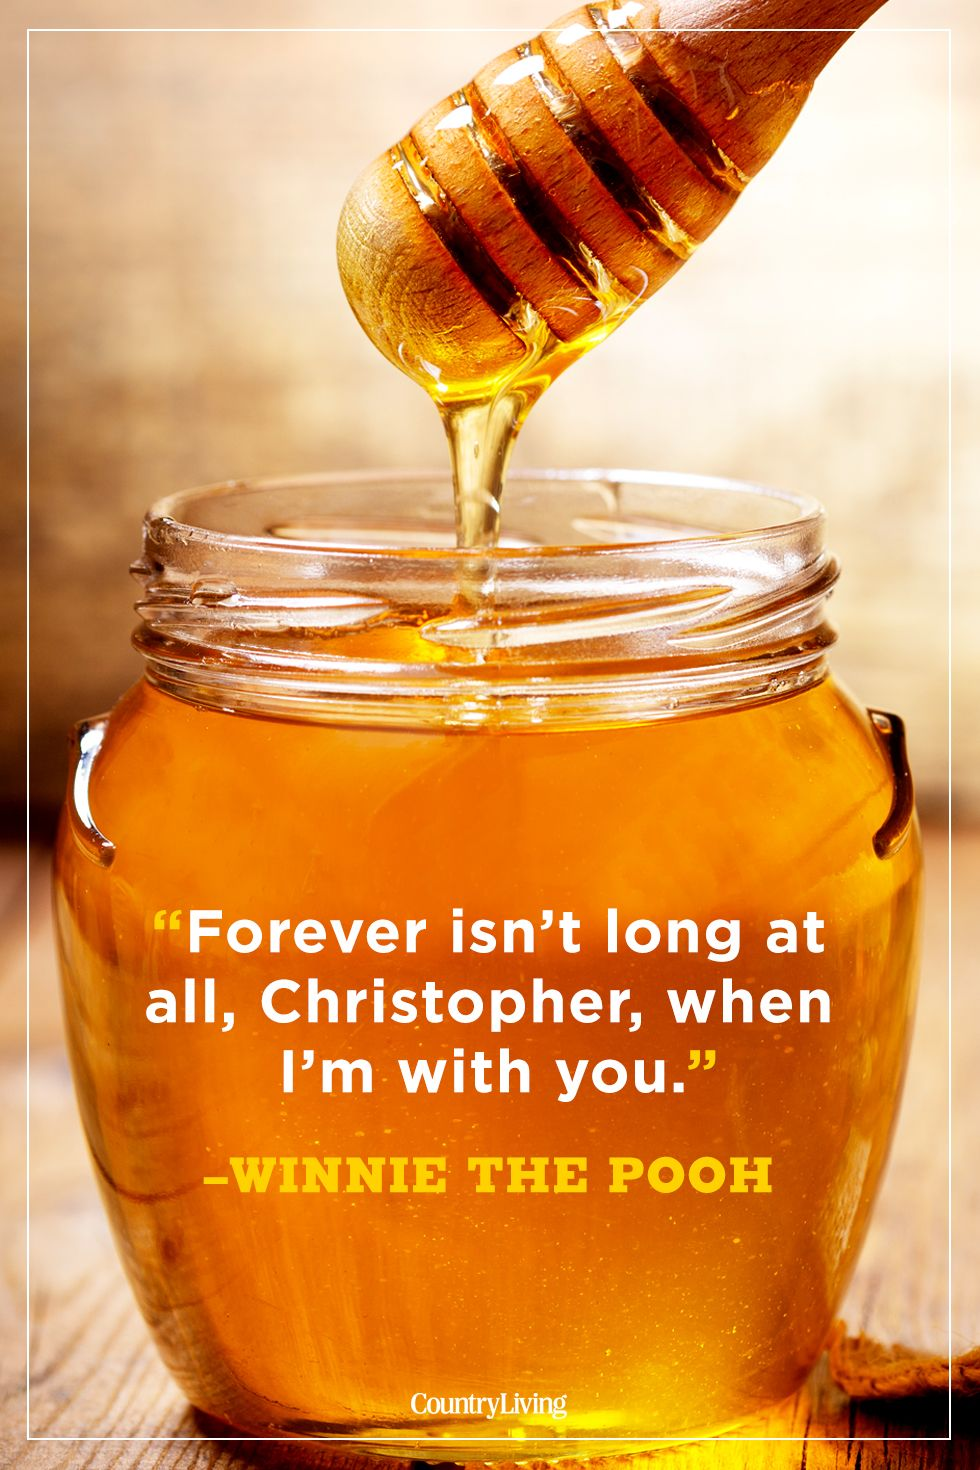 Best Winnie the Pooh Quotes   Winnie the Pooh Friendship and Love Quotes best winnie the pooh quotes